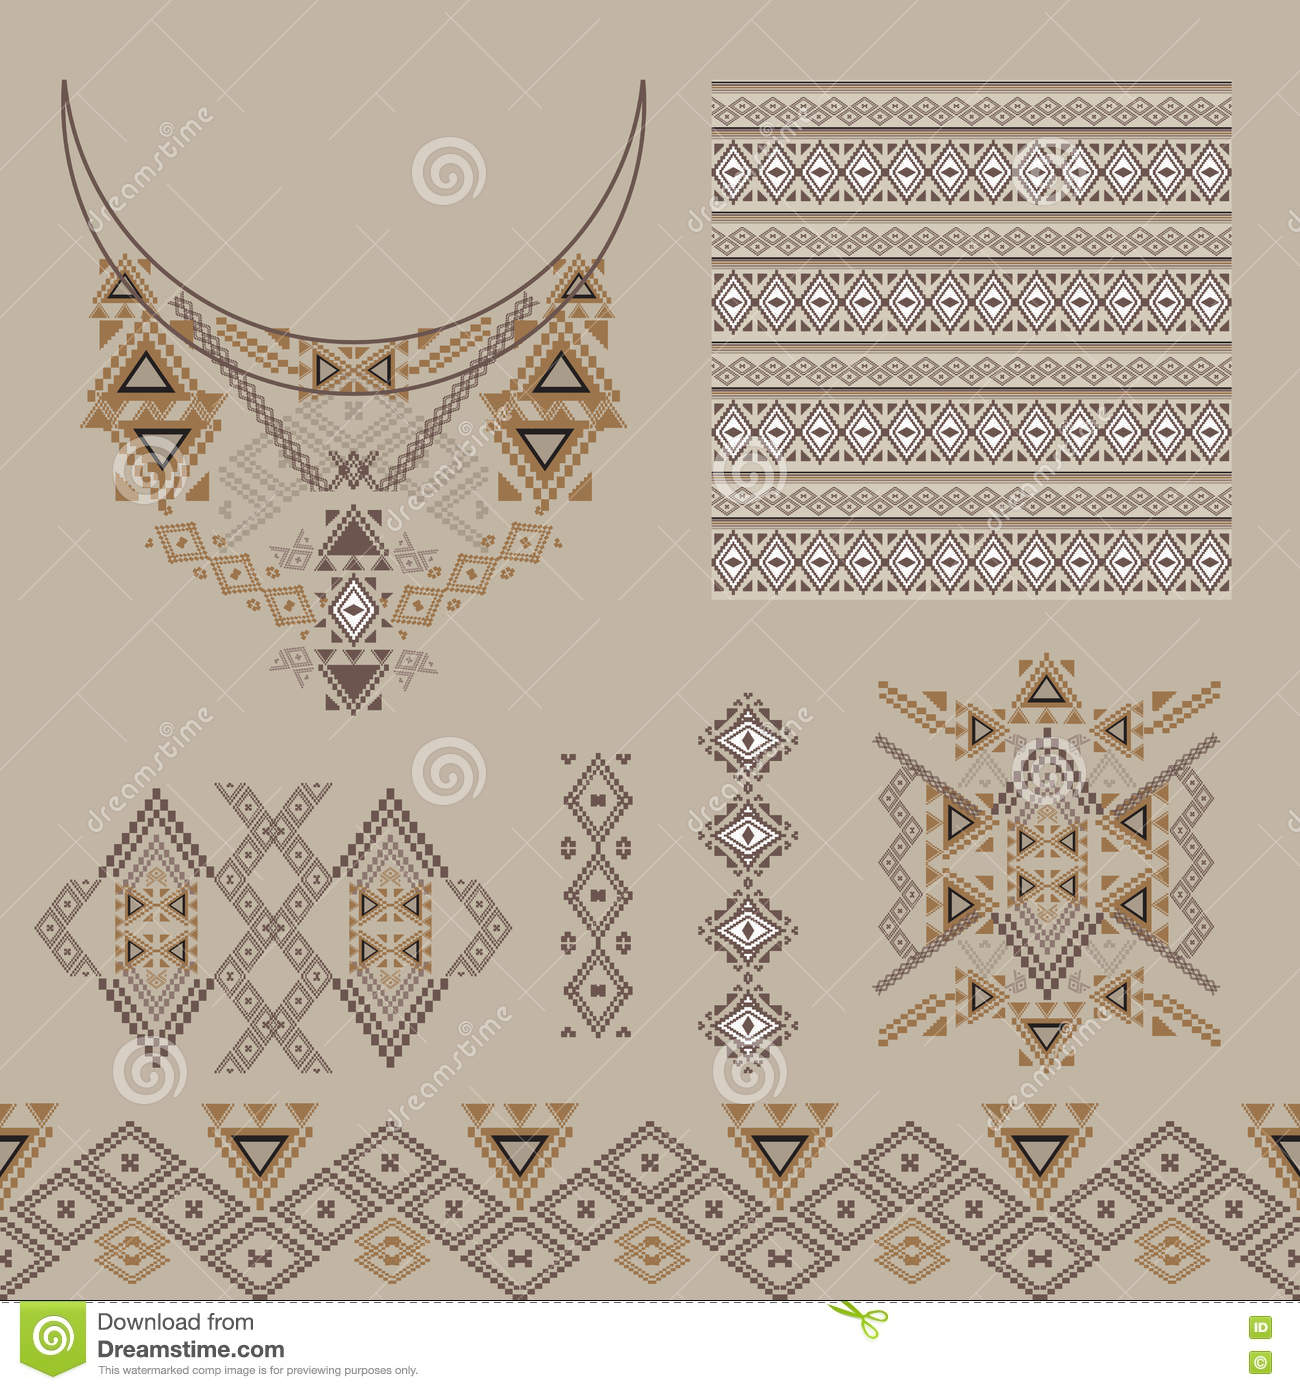 Vector Set Of Decorative Elements For Design And Fashion In Ethnic Tribal Style Neckline Borders Patterns And Seamless Texture Stock Vector Illustration Of Fabric Fashion 71500377